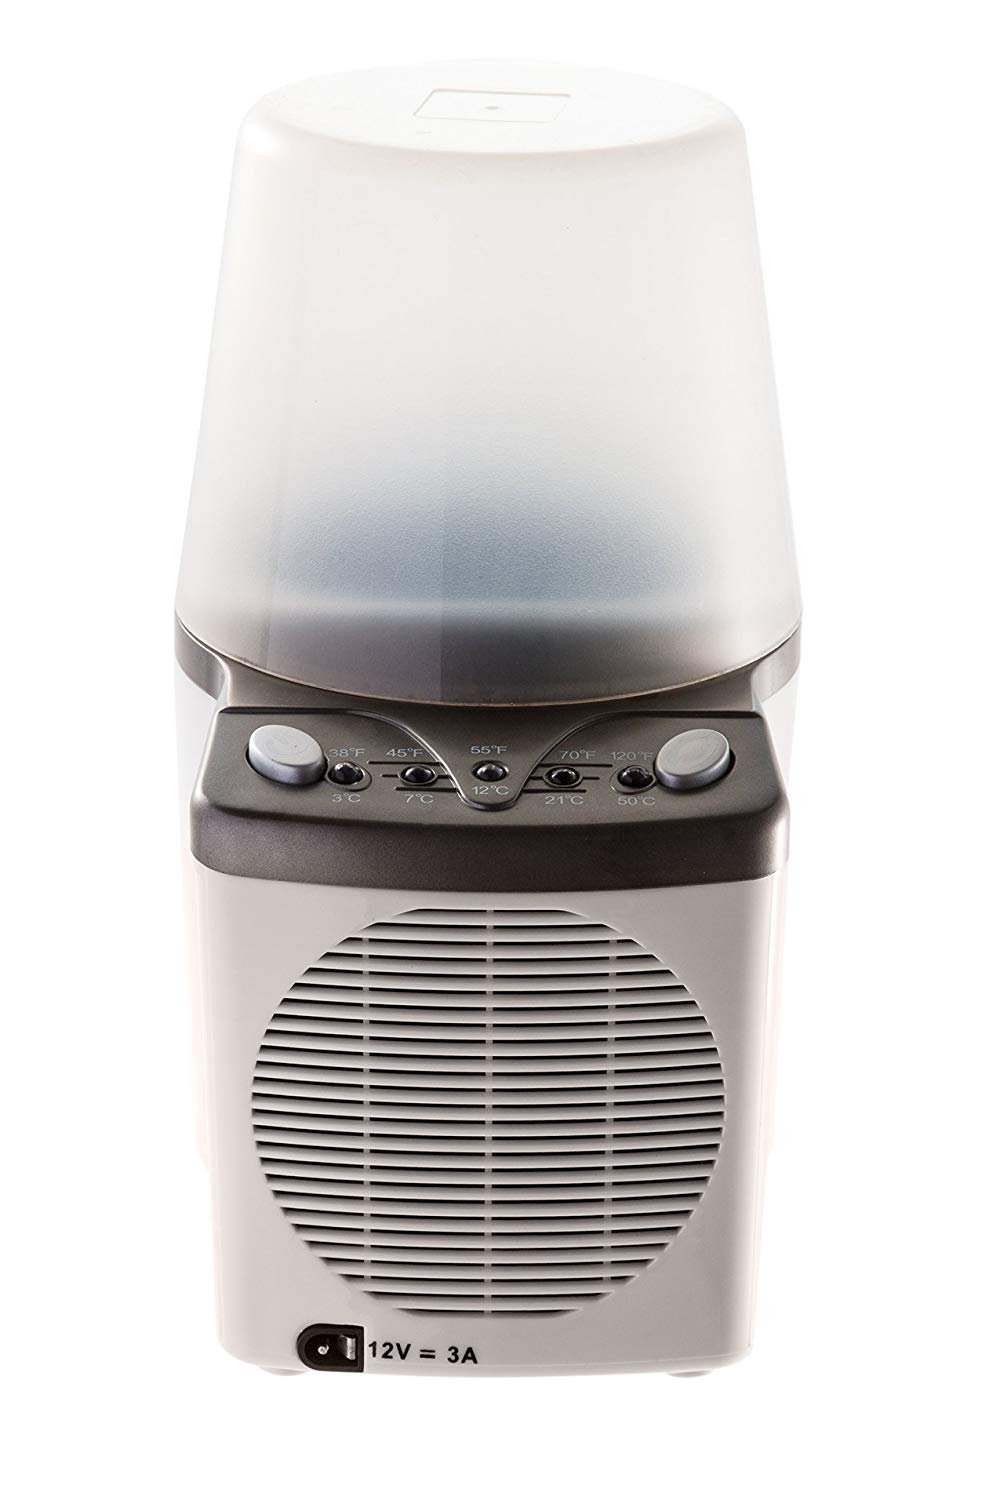 FLYZOE Beverage Cooler and Warmer by FLYZOE (Image #2)